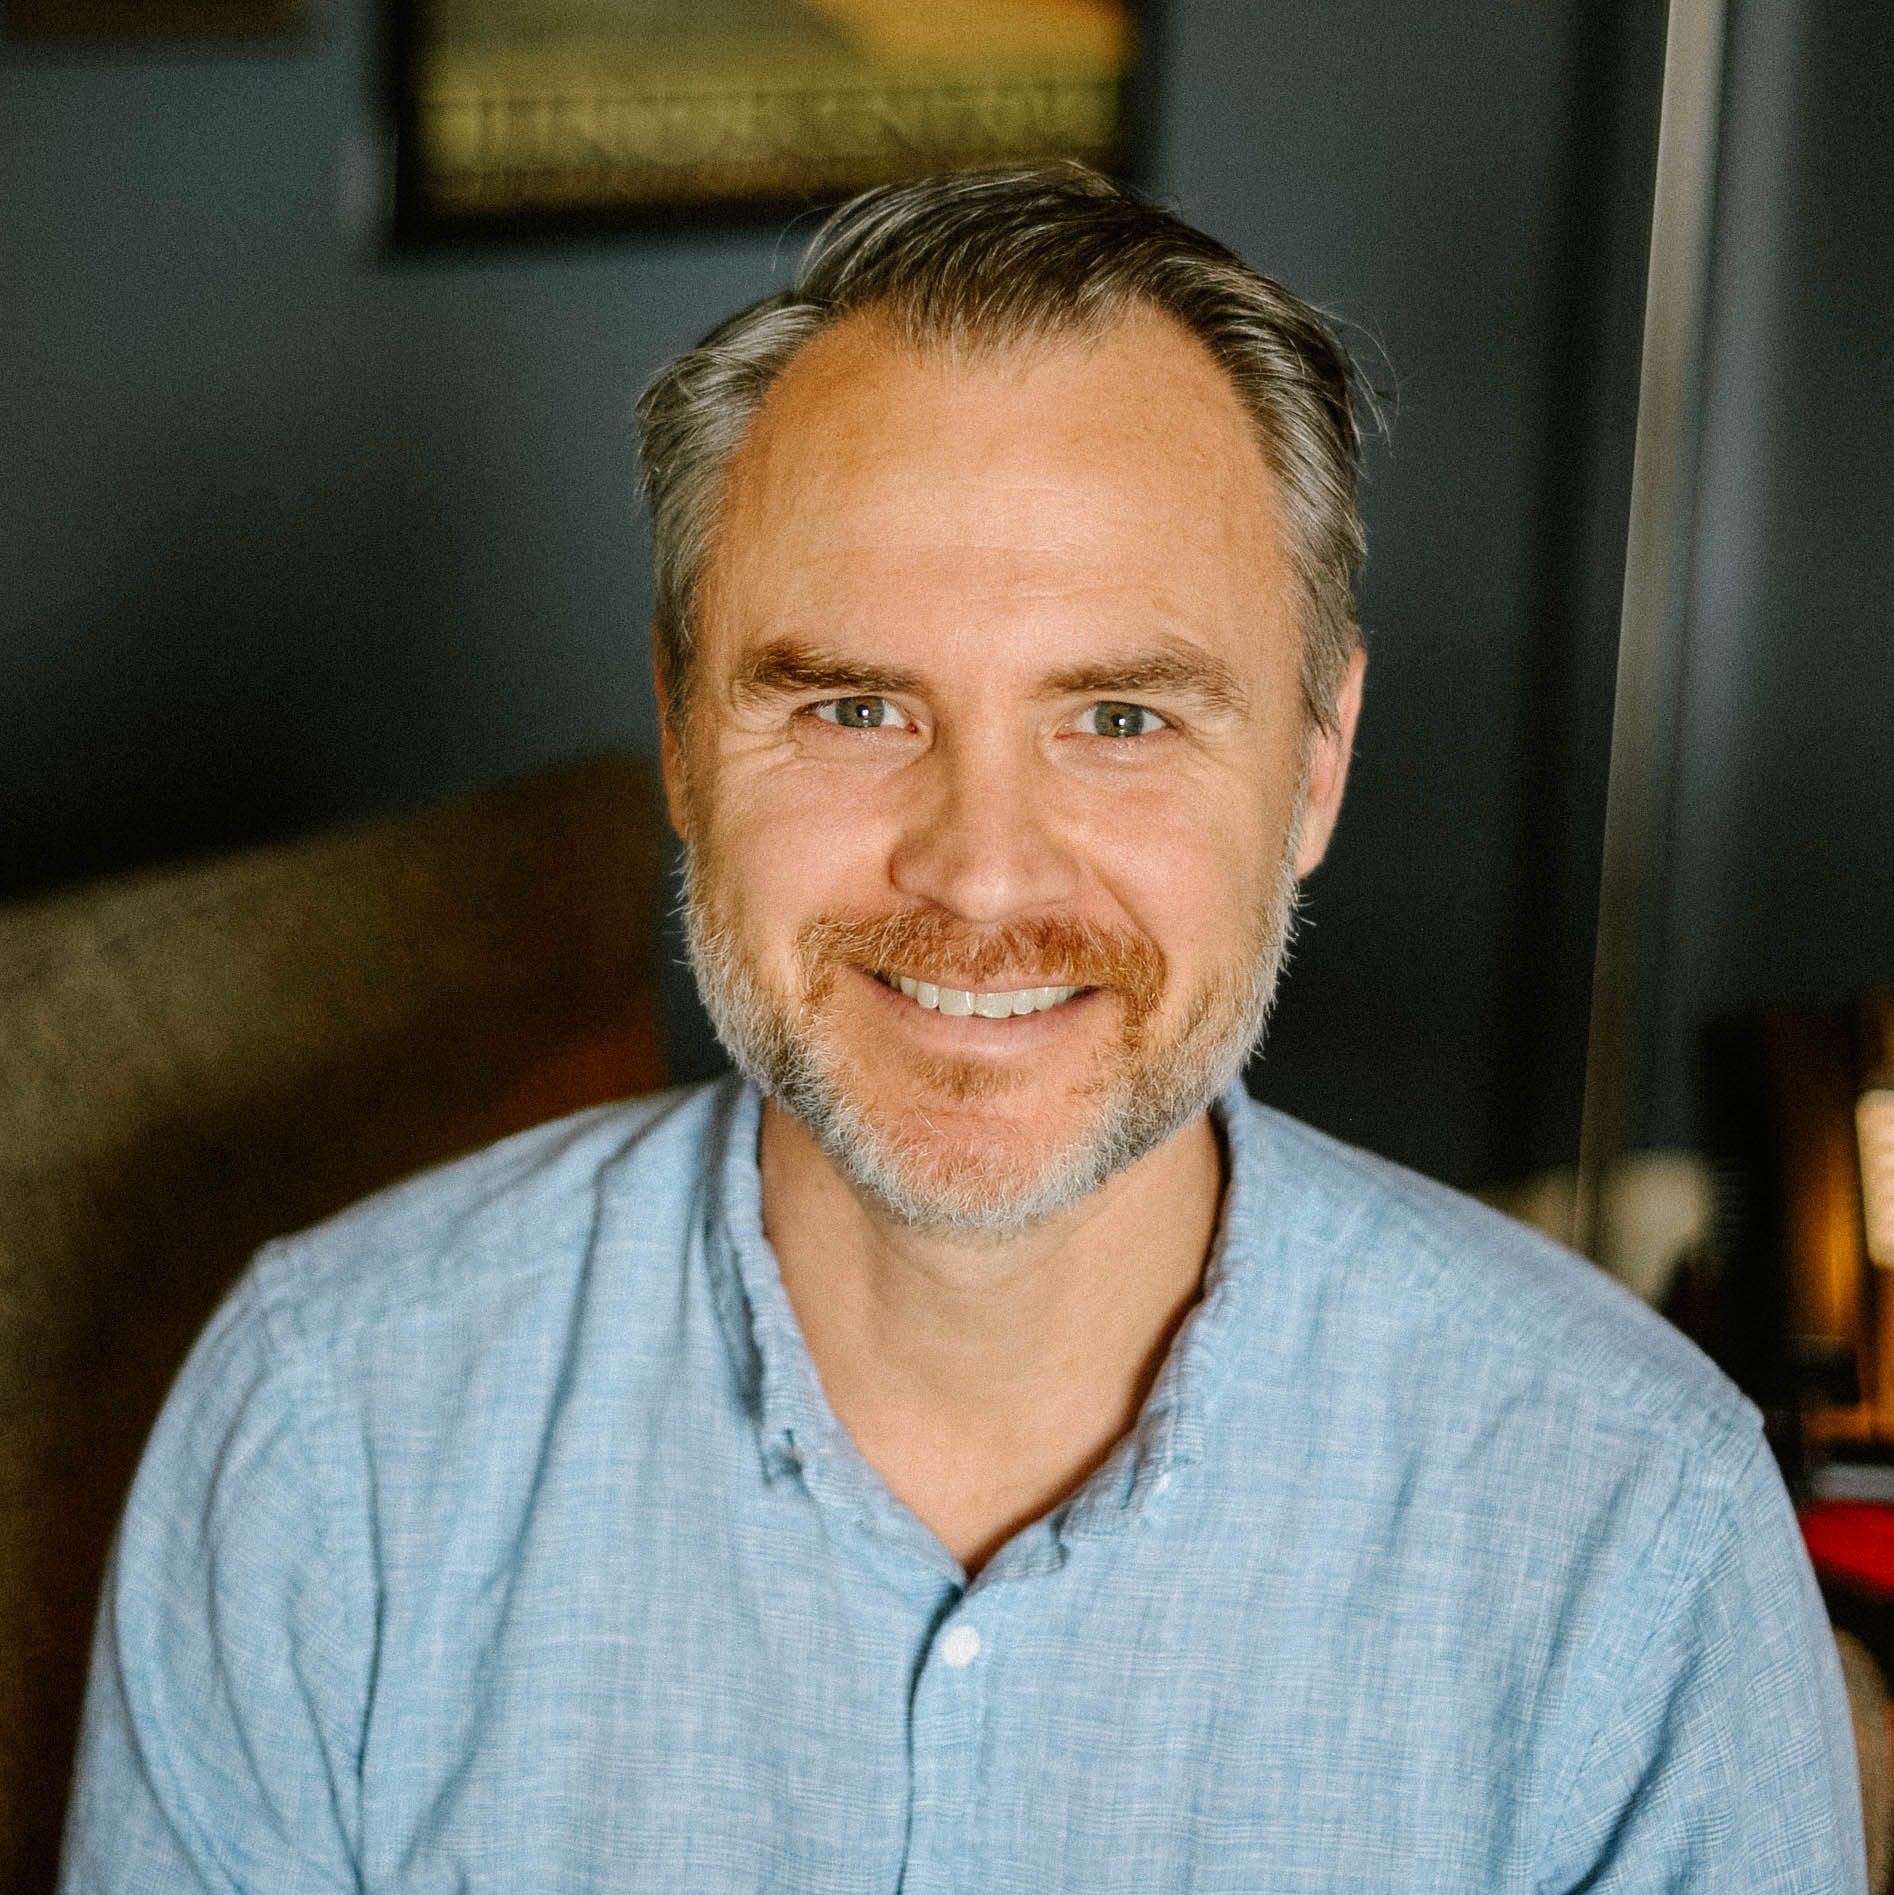 Bryan Mowrey - Bryan Mowrey leads Jubilee Church. Trans-locally, he oversees a group of churches in the Midwest region of the States and brings strategy and direction to the five apostolic hubs in Confluence,. Bryan is married to Rachel, and they have three children.